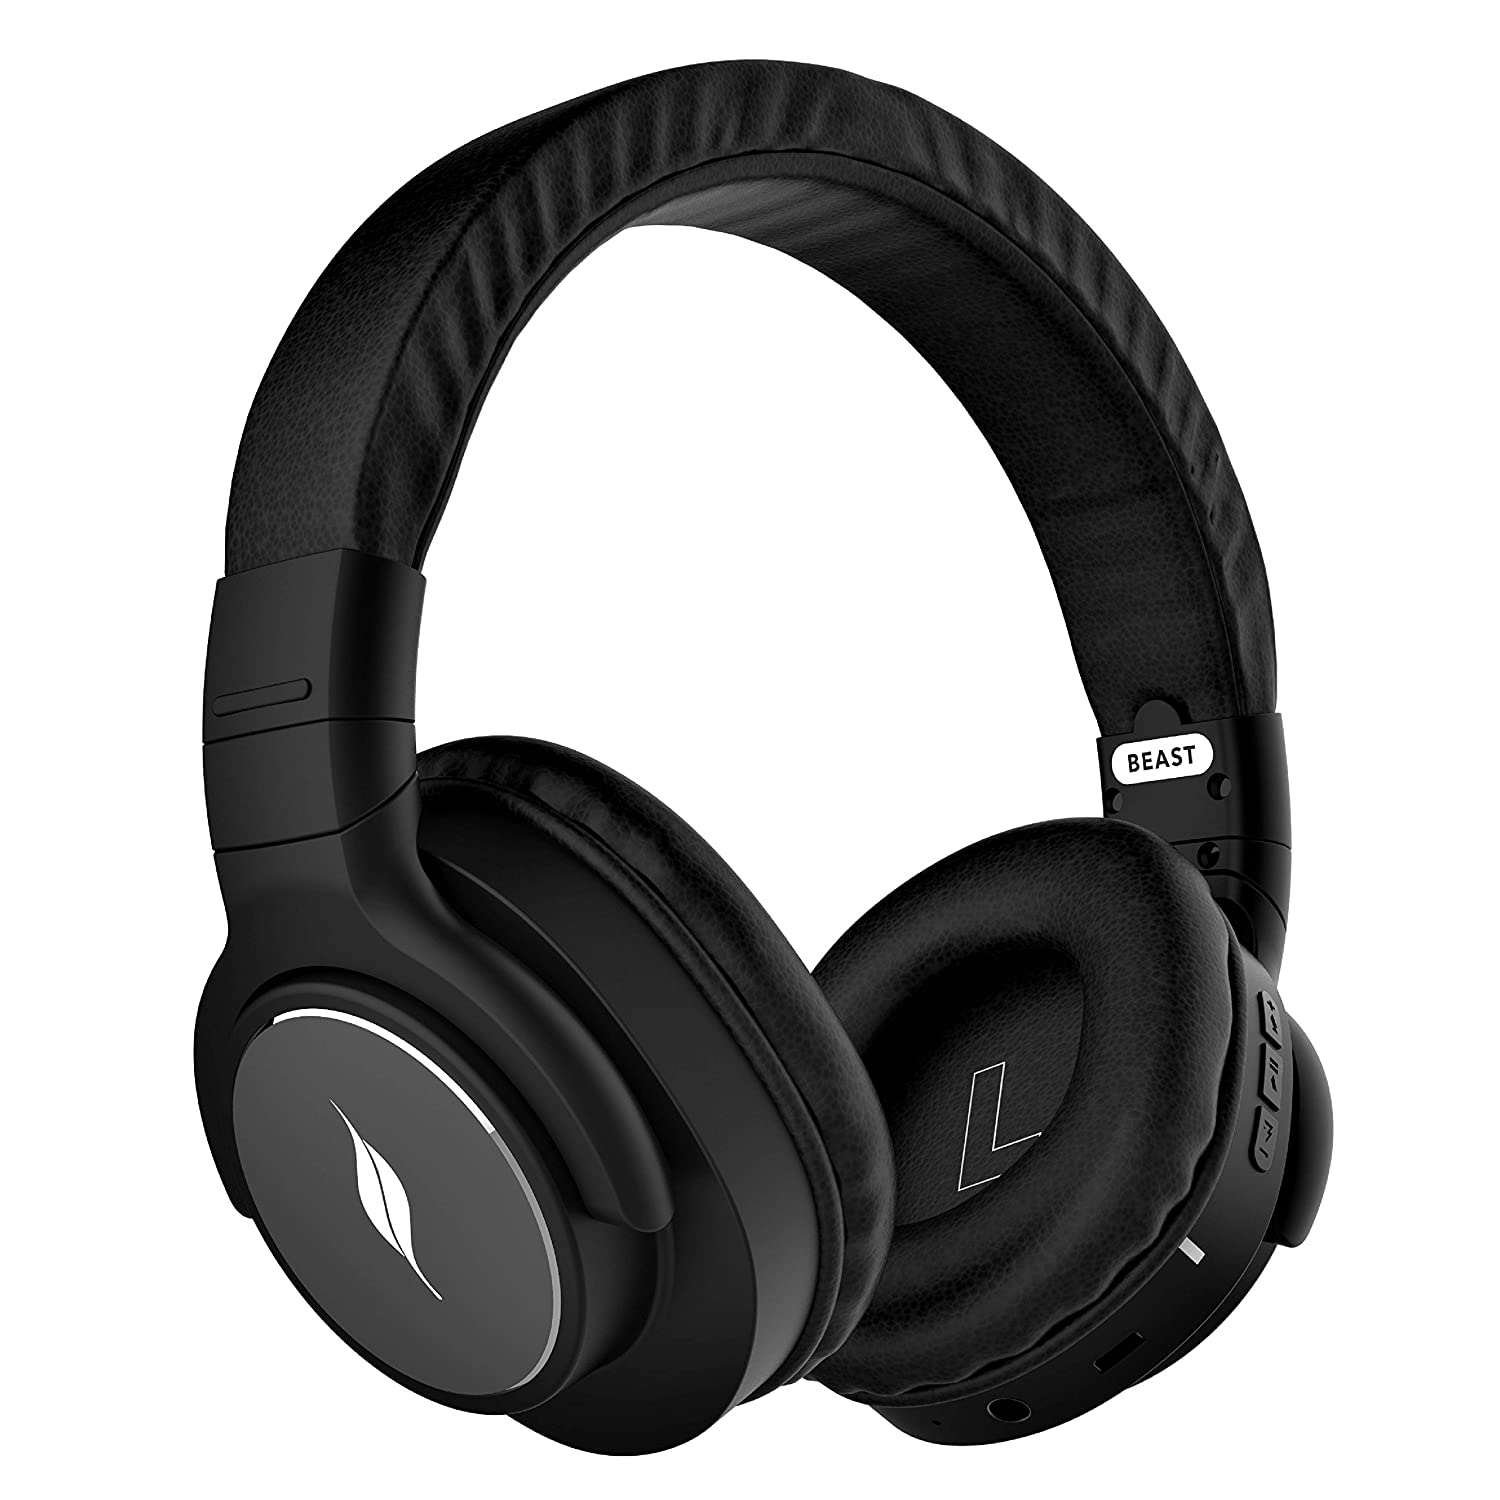 Leaf Bass 2 Wireless Headphones with Mic and 15 Hour Battery Life